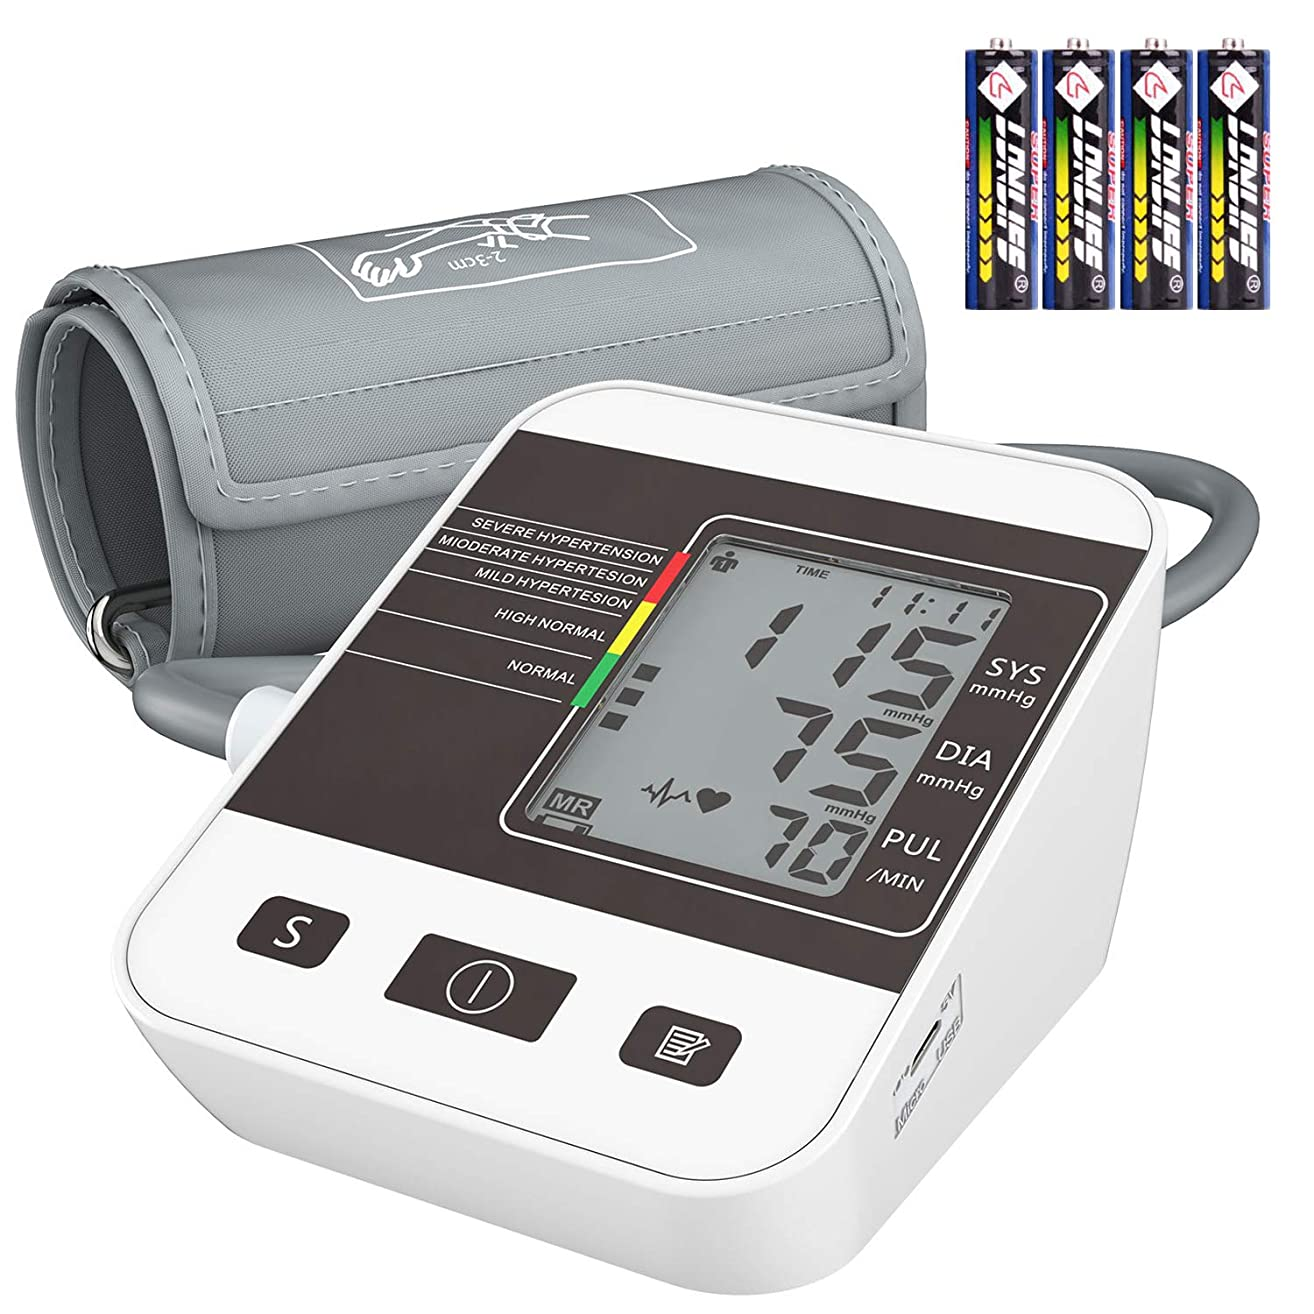 Blood Pressure Monitor for Home Use with Large LCD Display,Annsky Digital Upper Arm Automatic Measure Blood Pressure and Heart Rate Pulse,2 Sets of User Memories